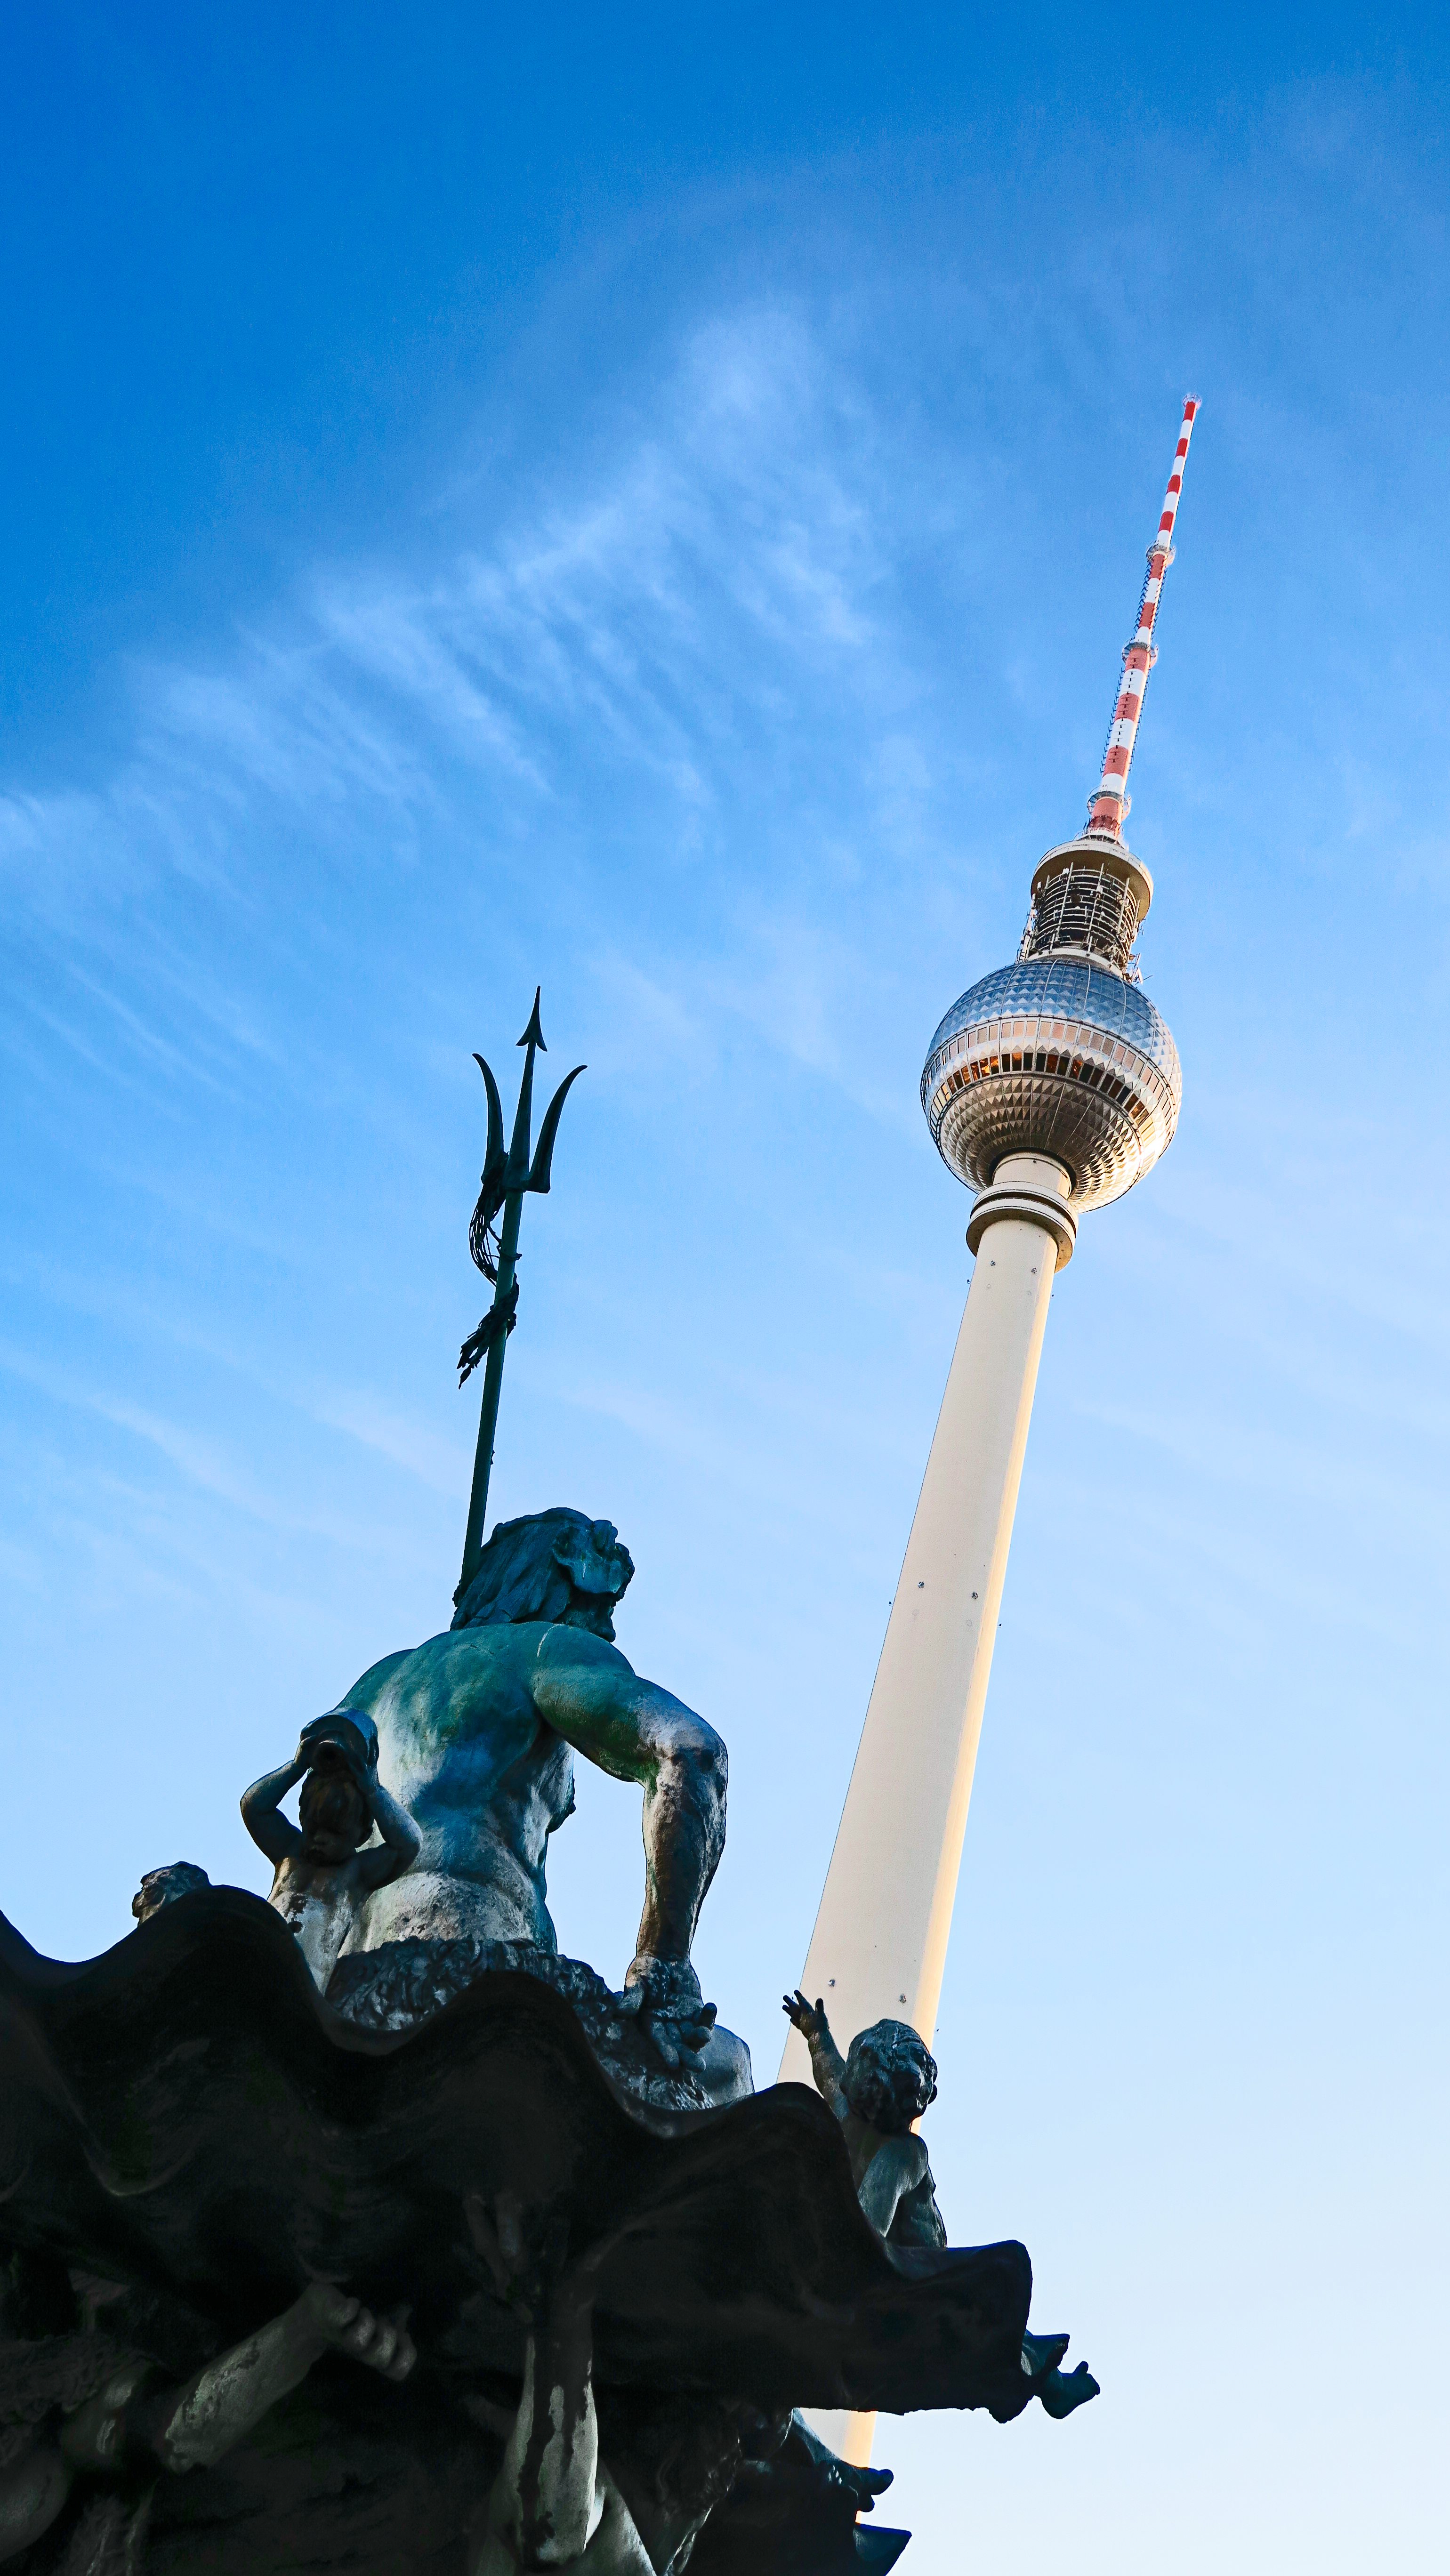 Low Angle Photo of Statue and Tower Structure